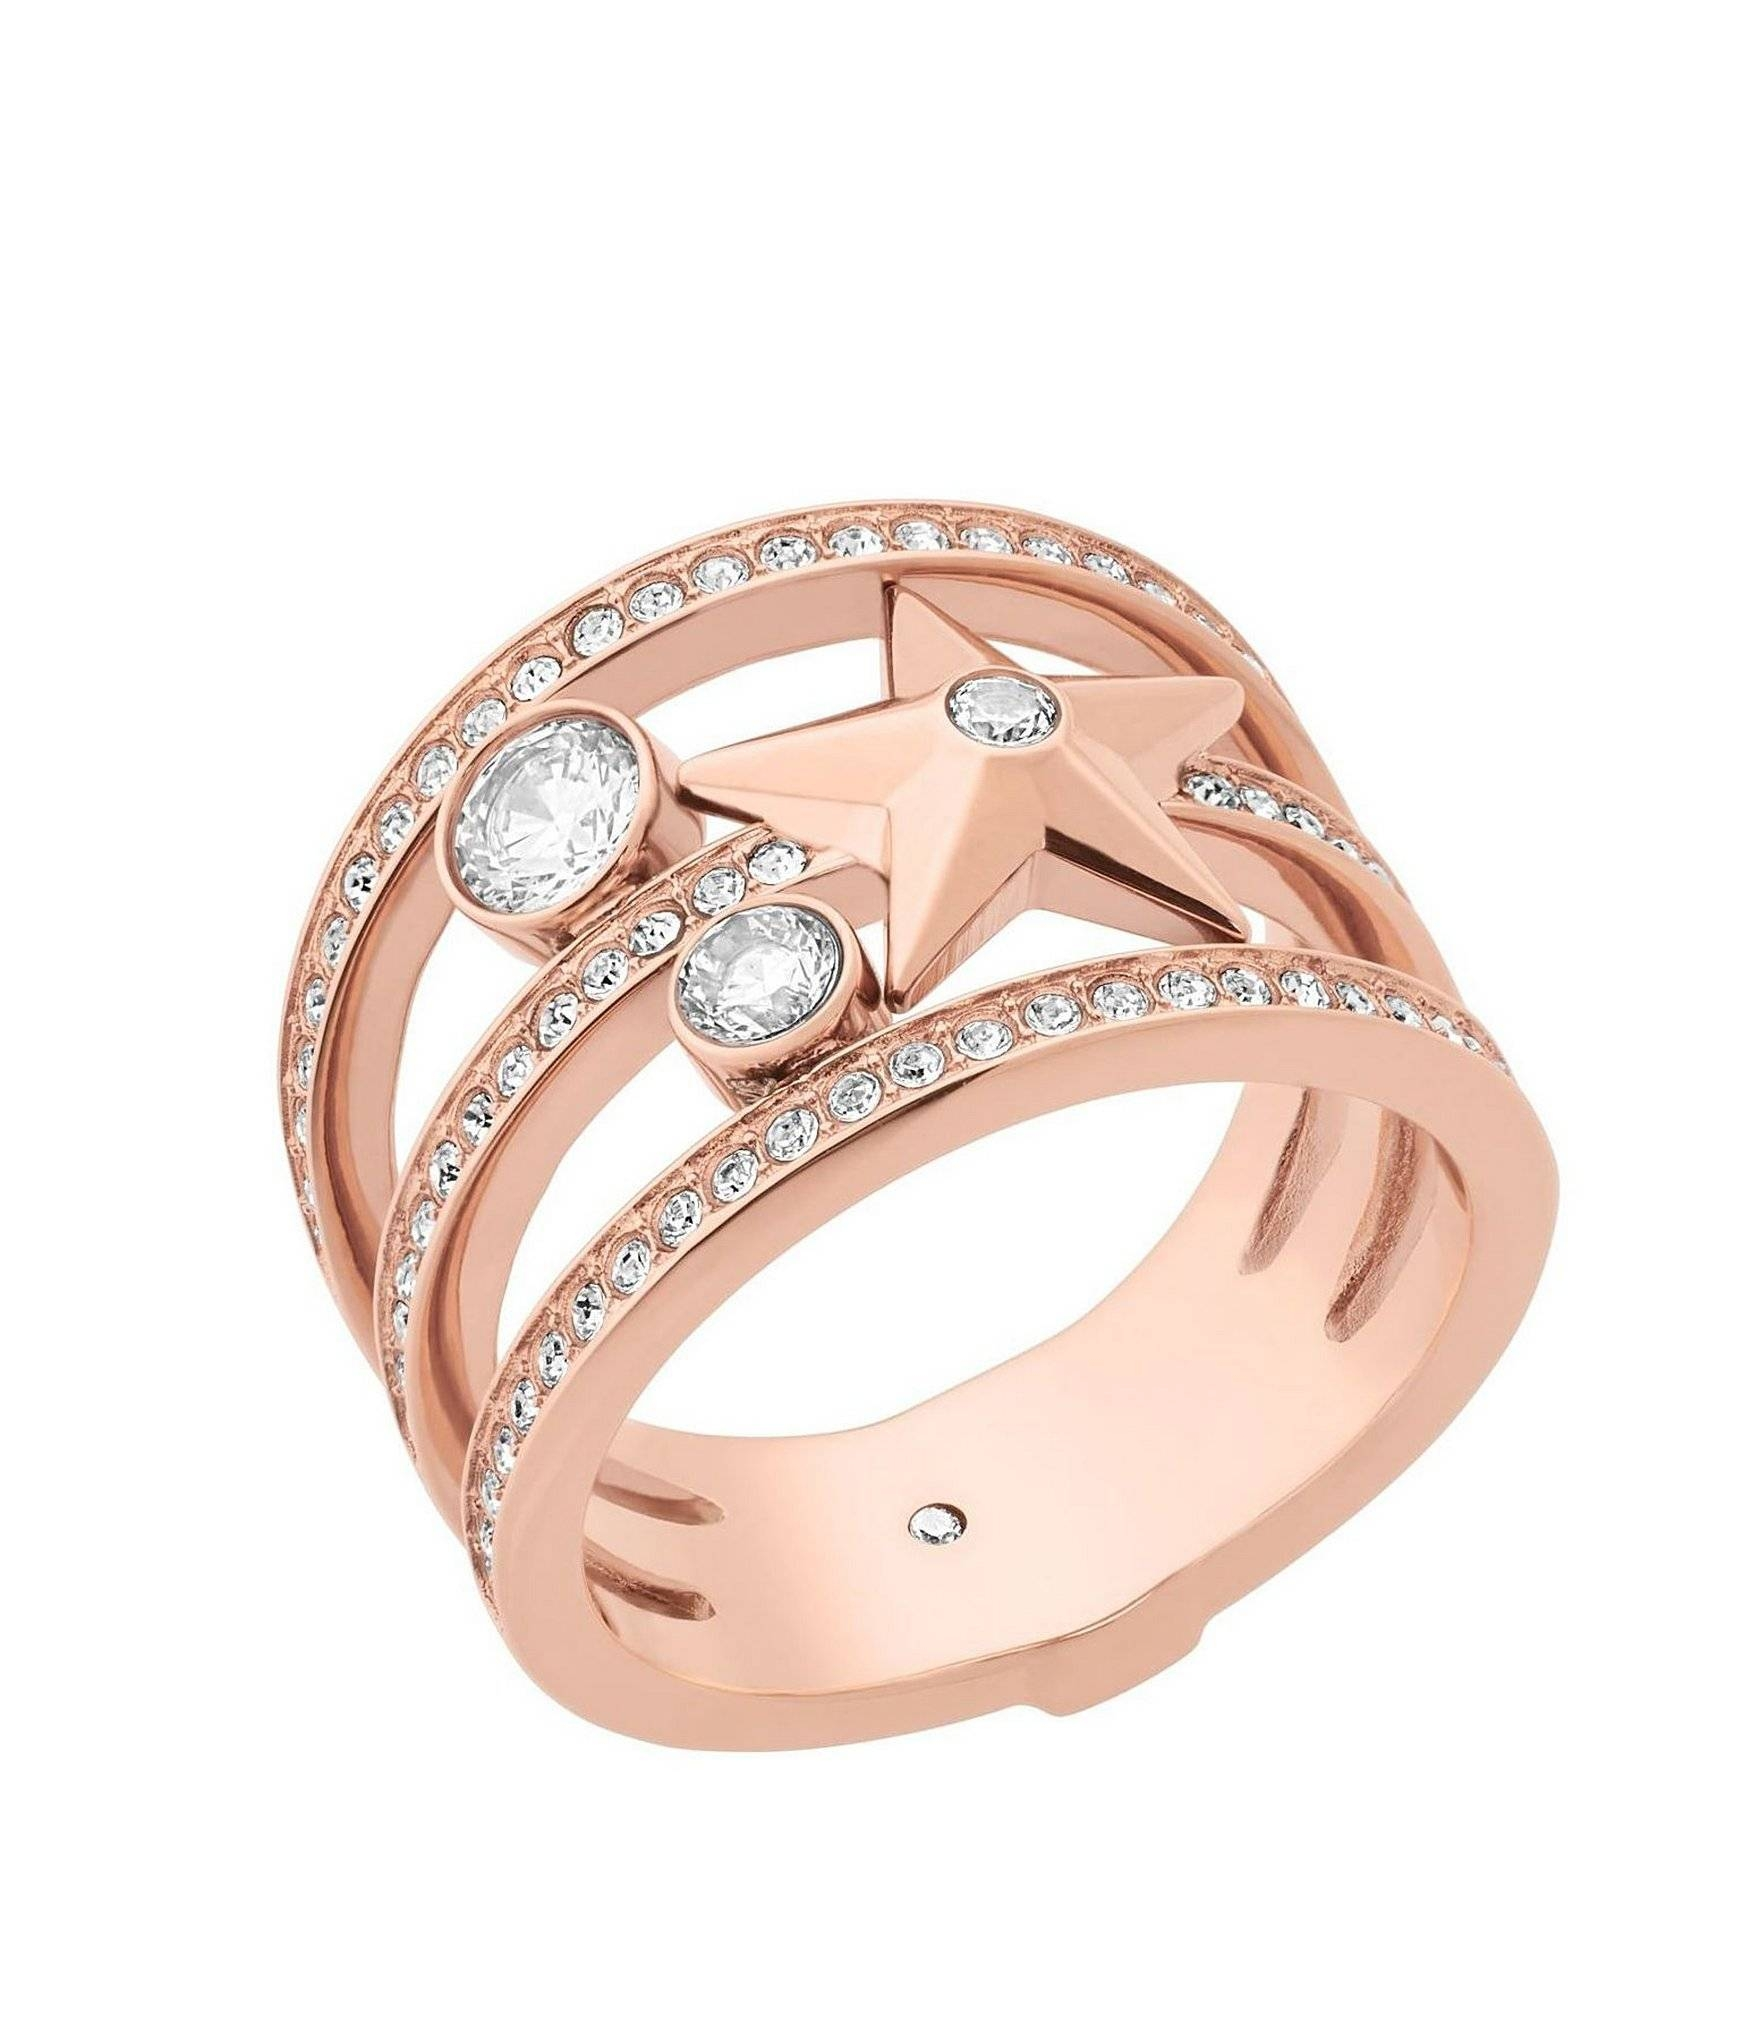 Accessories | Jewelry | Crystal & Rhinestone Jewelry | Rings Regarding Dillards Wedding Rings (View 1 of 15)